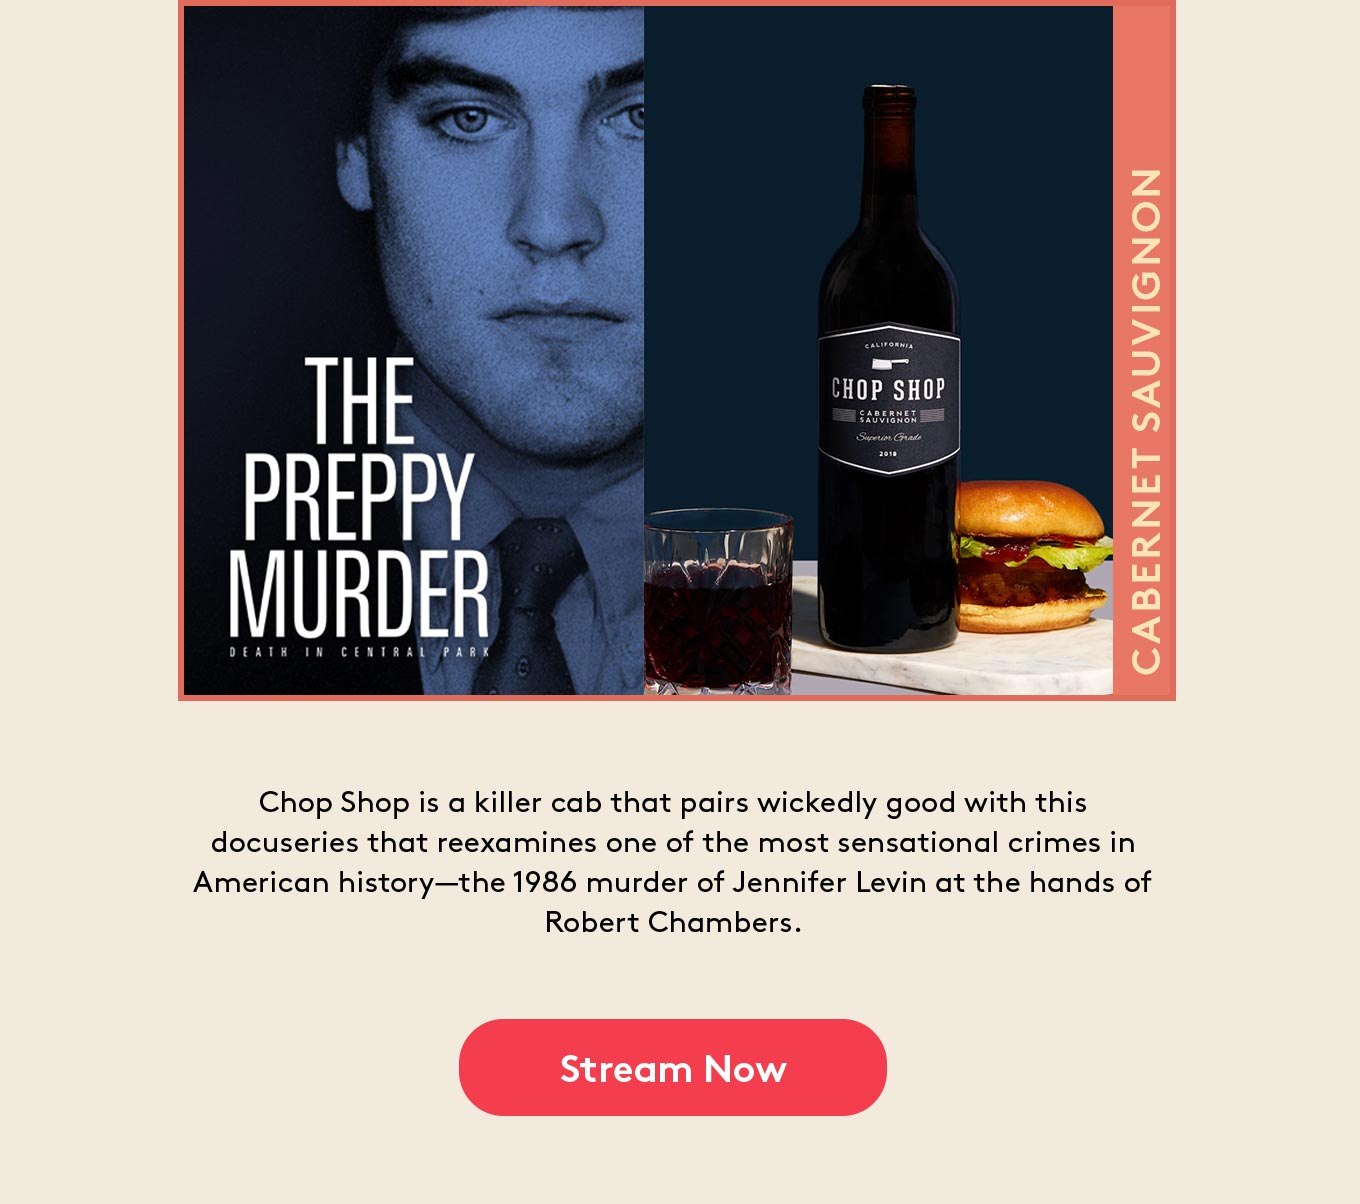 Chop Shop is a killer cab that pairs wickedly good with this docuseries that reexamines one of the most sensational crimes in American history—the 1986 murder of Jennifer Levin at the hands of Robert Chambers.